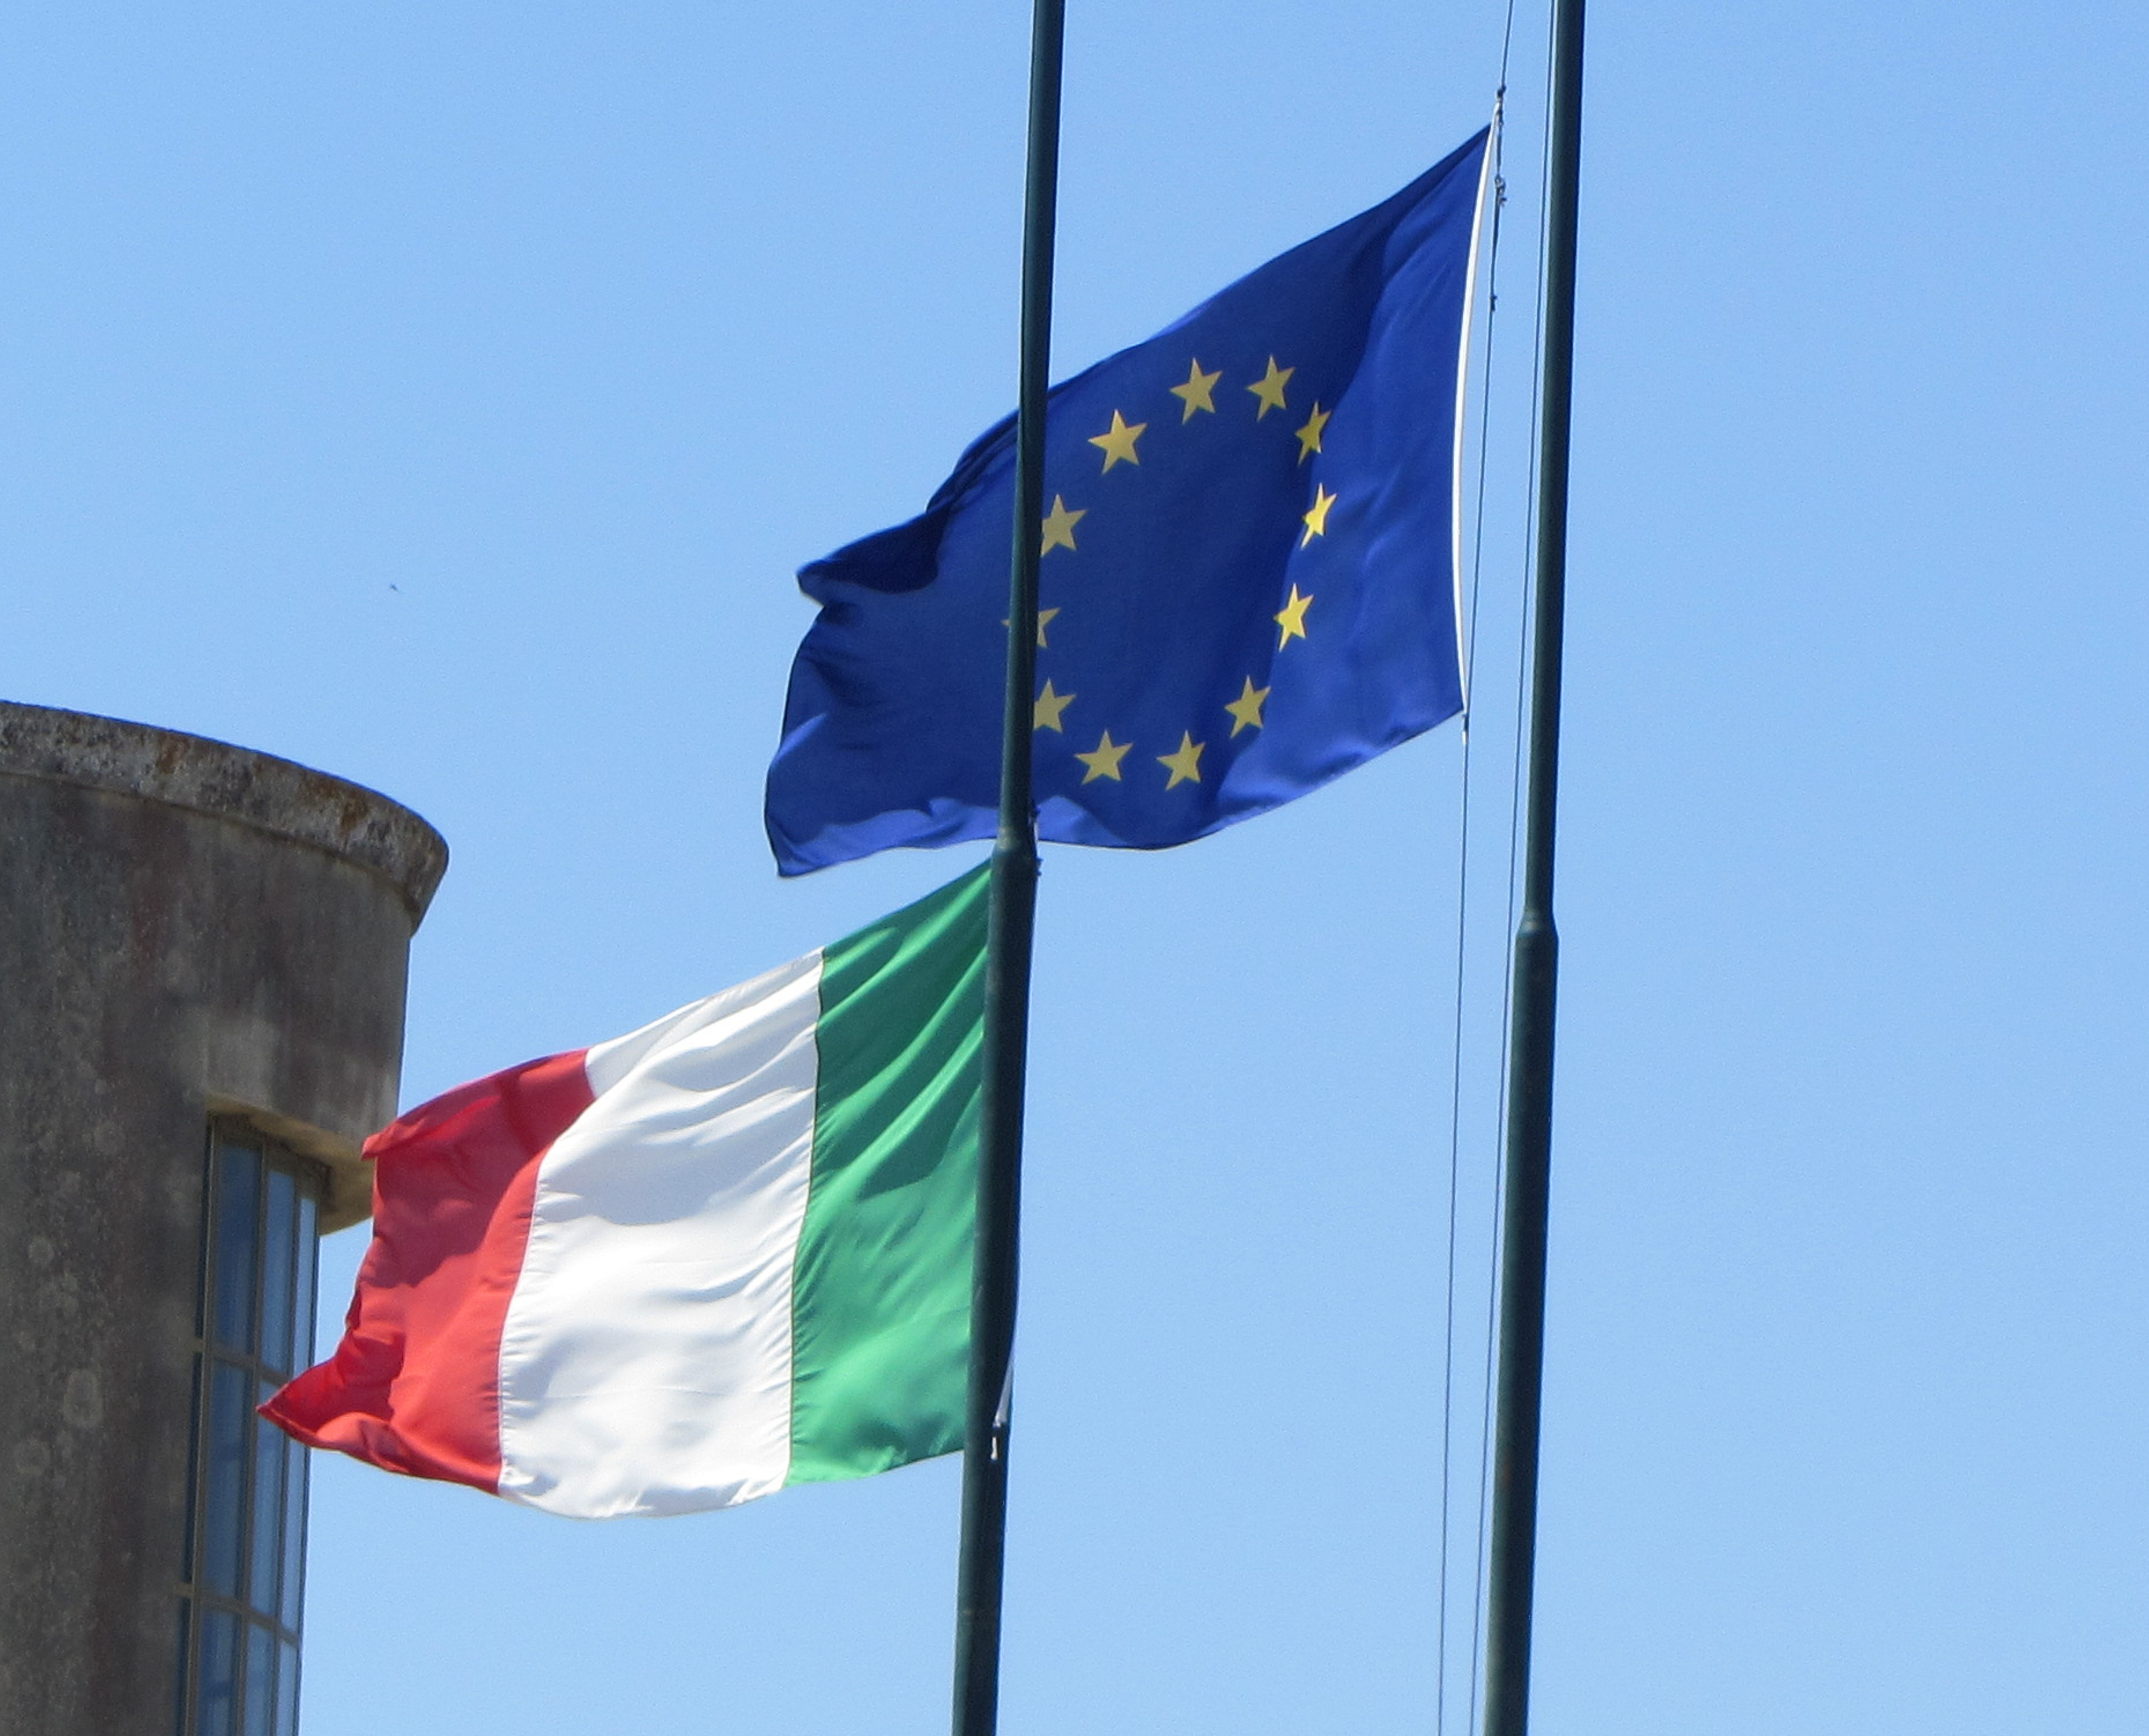 Flag_of_Italy_and_Europe